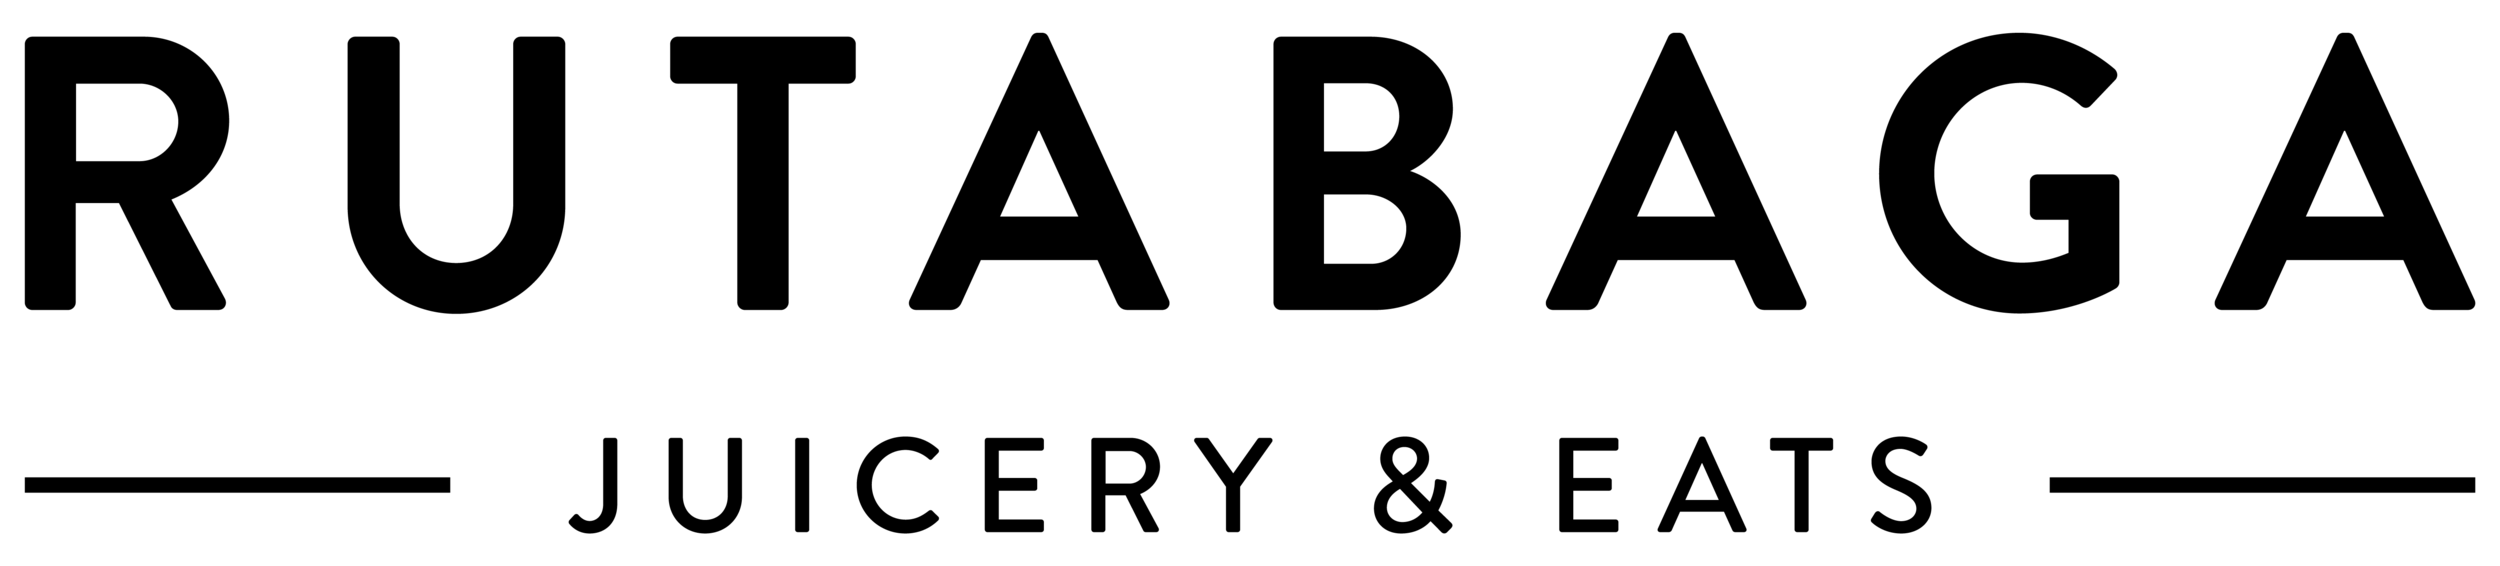 primary-logo-black.png